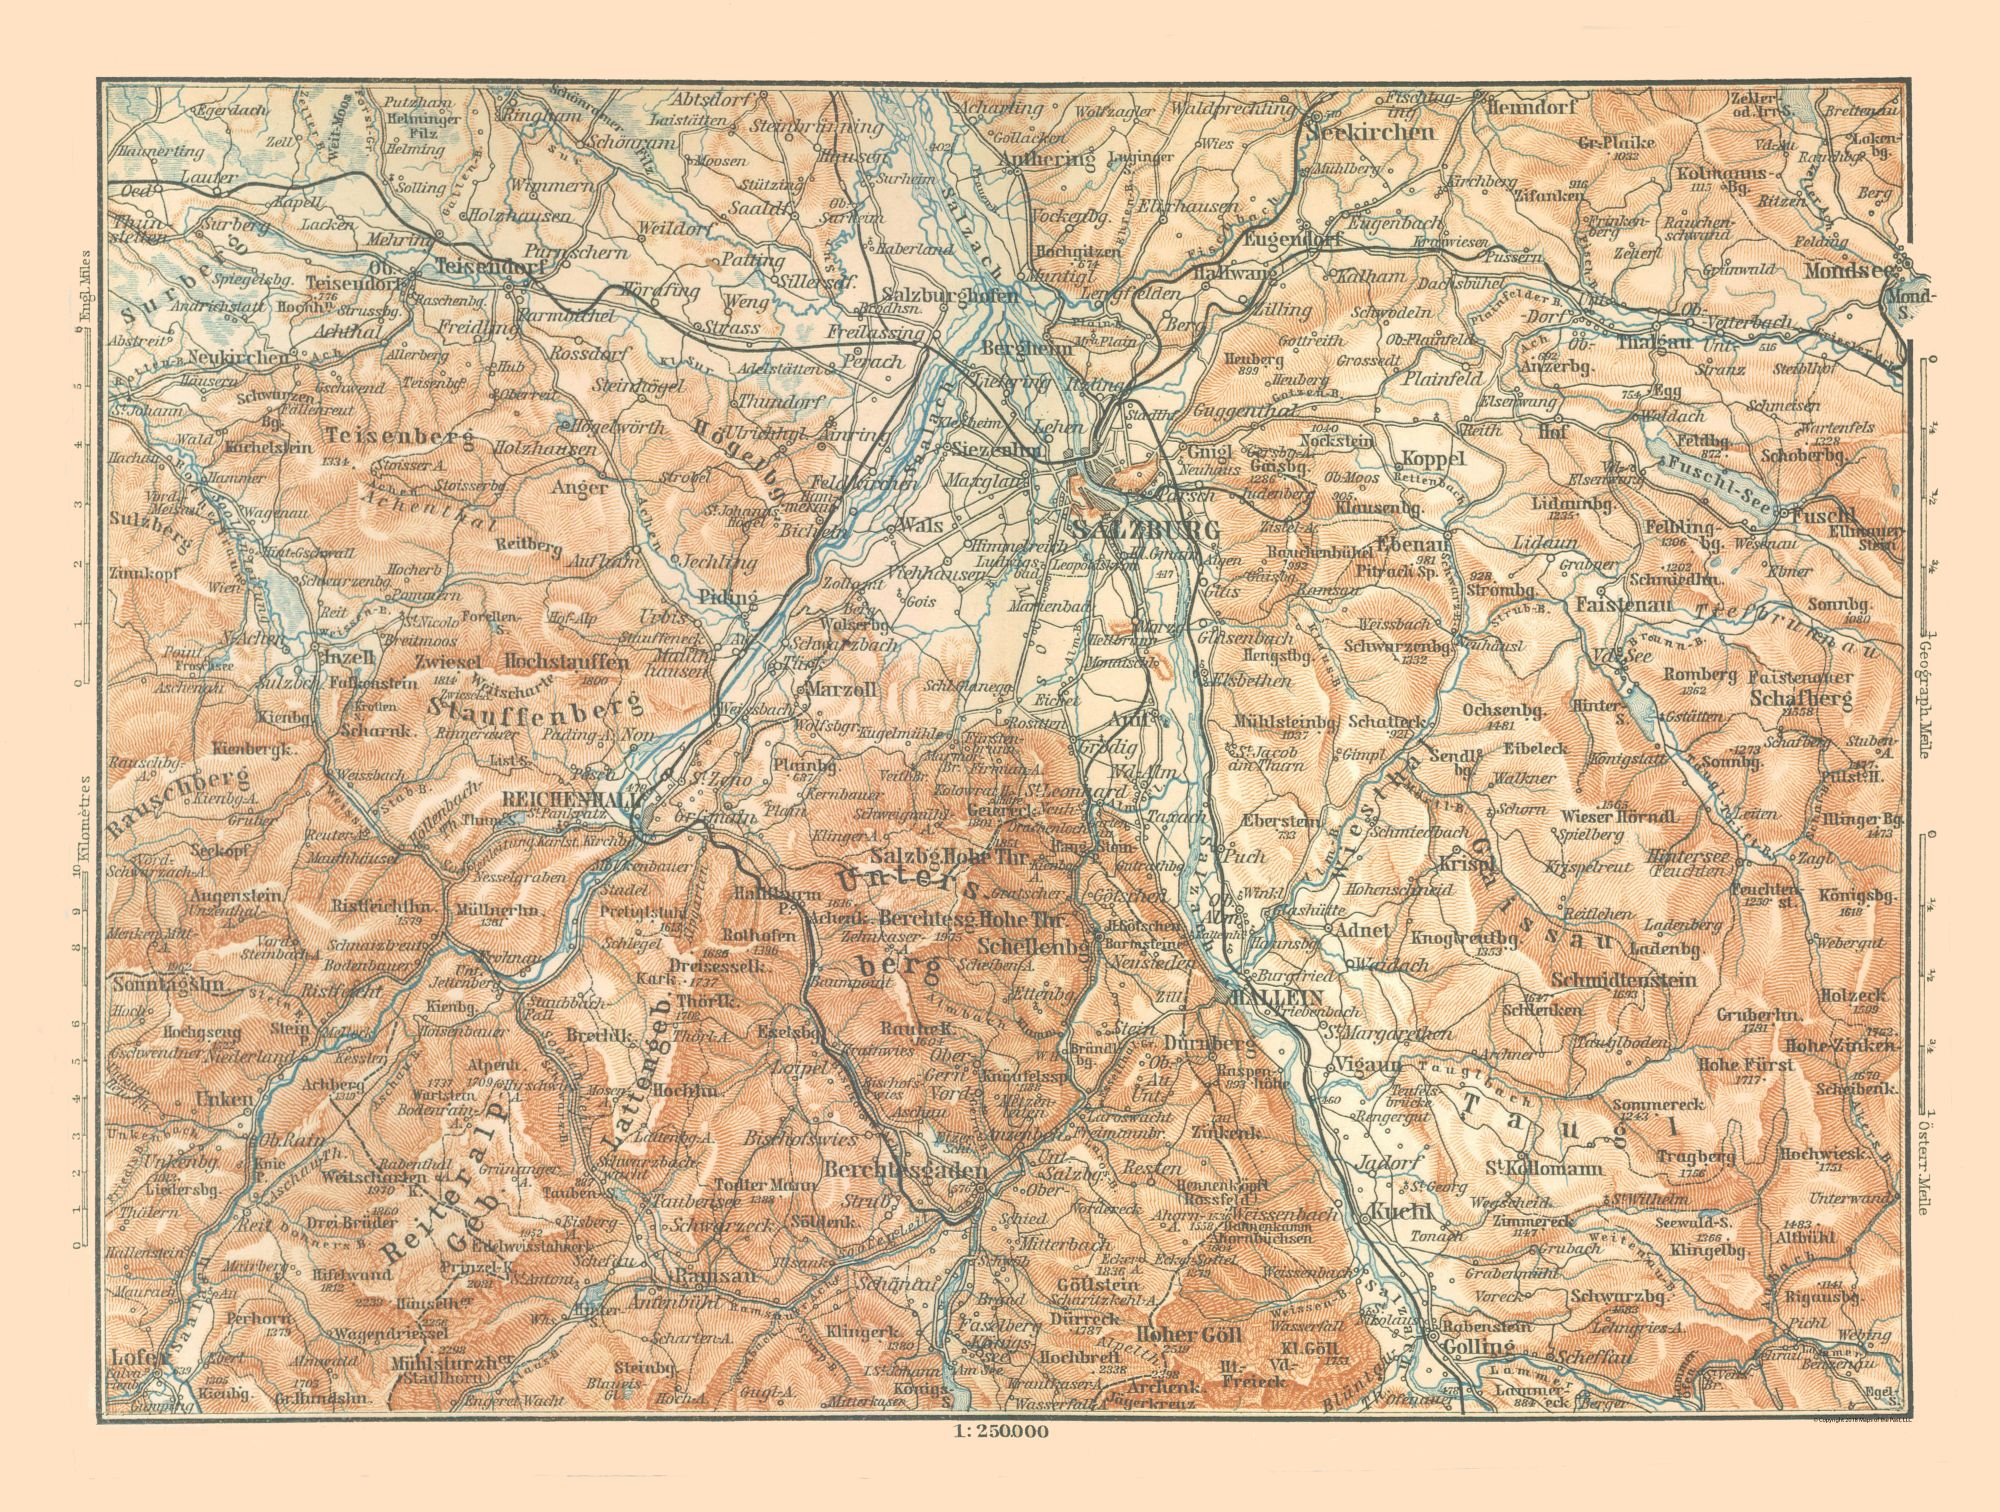 Map Of Germany Mountains.International Map Mountains Austria Germany Baedeker 1896 30 43 X 23